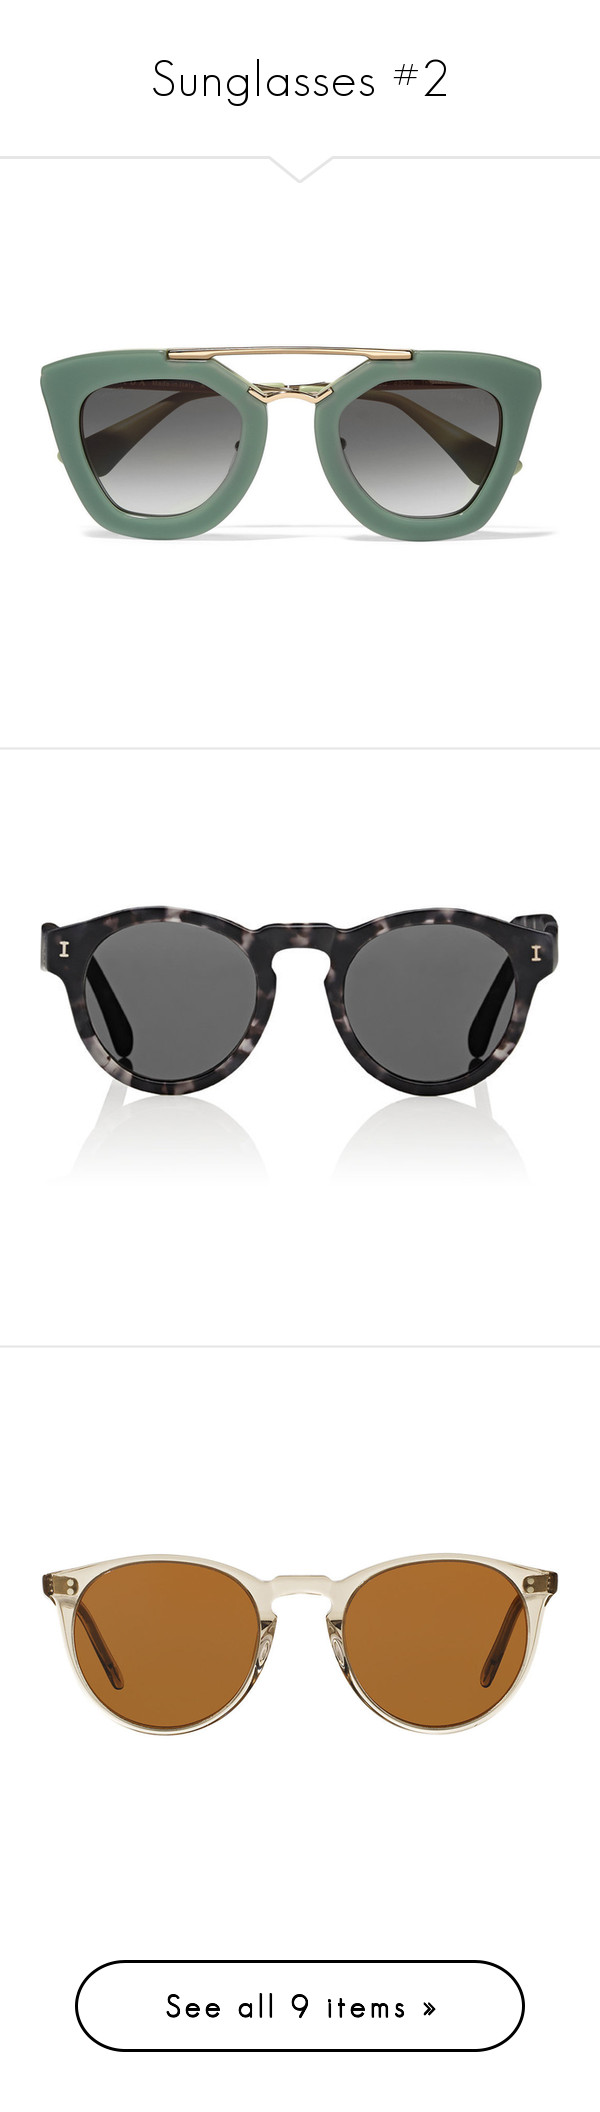 """""""Sunglasses #2"""" by majo-cote on Polyvore featuring accessories, eyewear, sunglasses, tortoiseshell glasses, christian dior, christian dior eyewear, logo sunglasses, tortoise sunglasses, glasses y mint"""